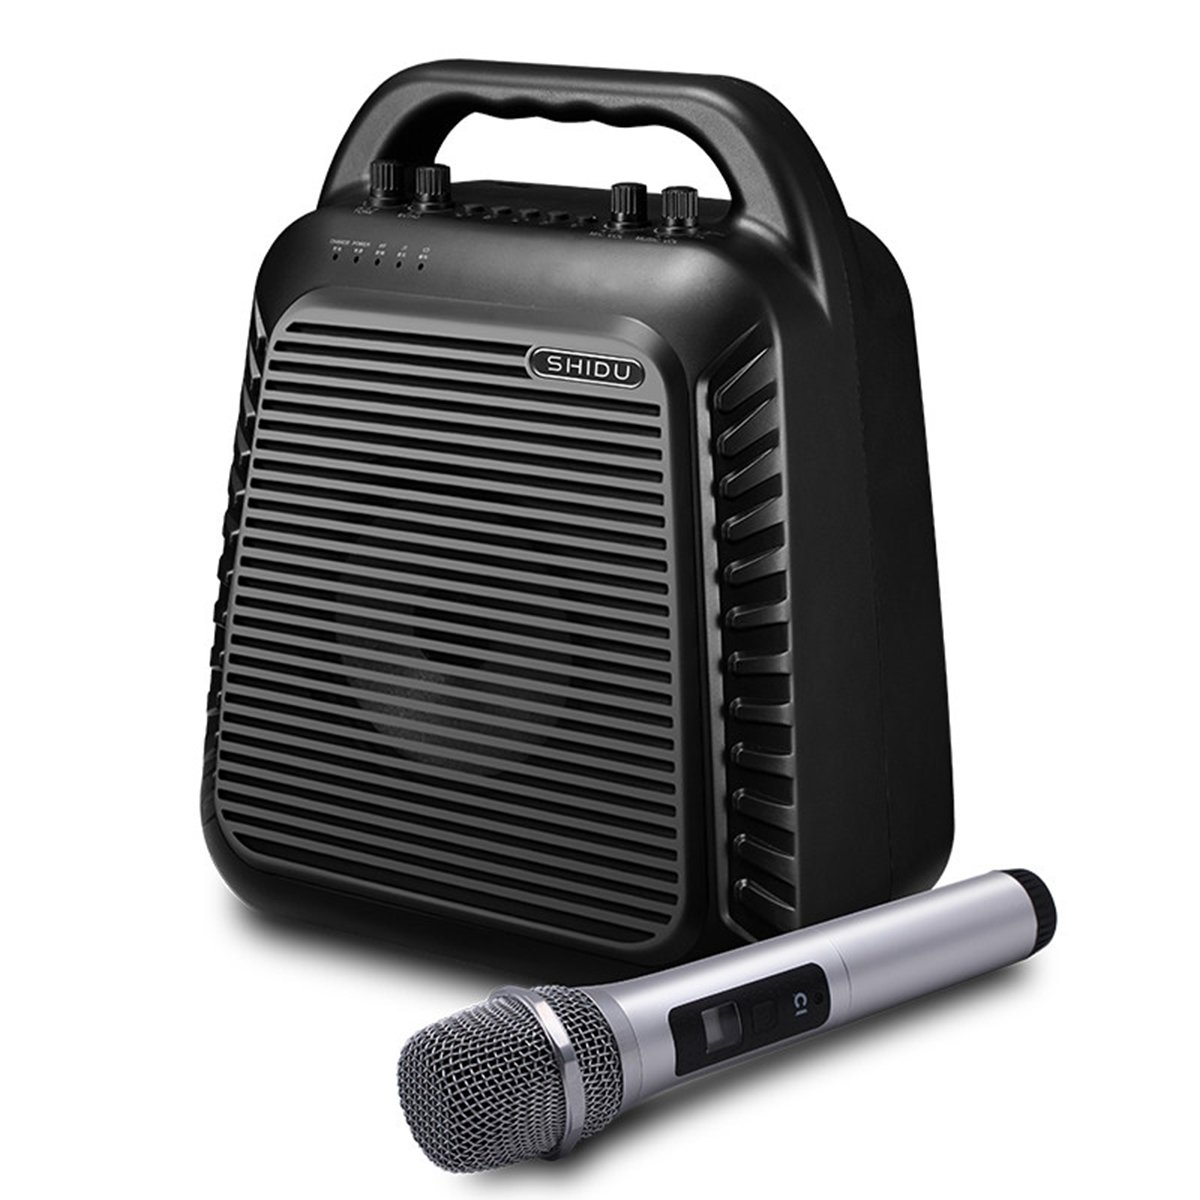 Portable PA System Wireless Microphone SD-90A 60W Bluetooth Karaoke PA Speaker Rechargeable Loud Speaker for Classroom, Party, Outdoors Or Stage Performance